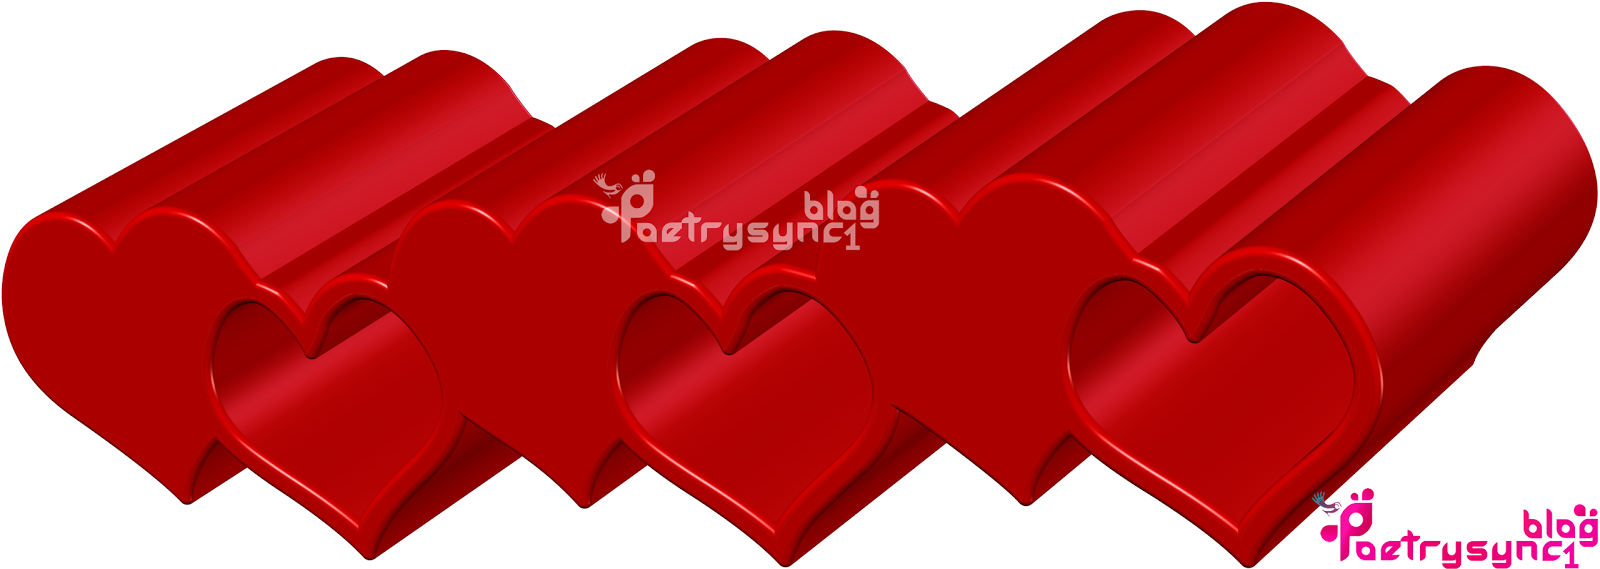 Love-3D-Image-Desktop-Wallpaper-In-Red-Colour-By-Poetrysync1.blog